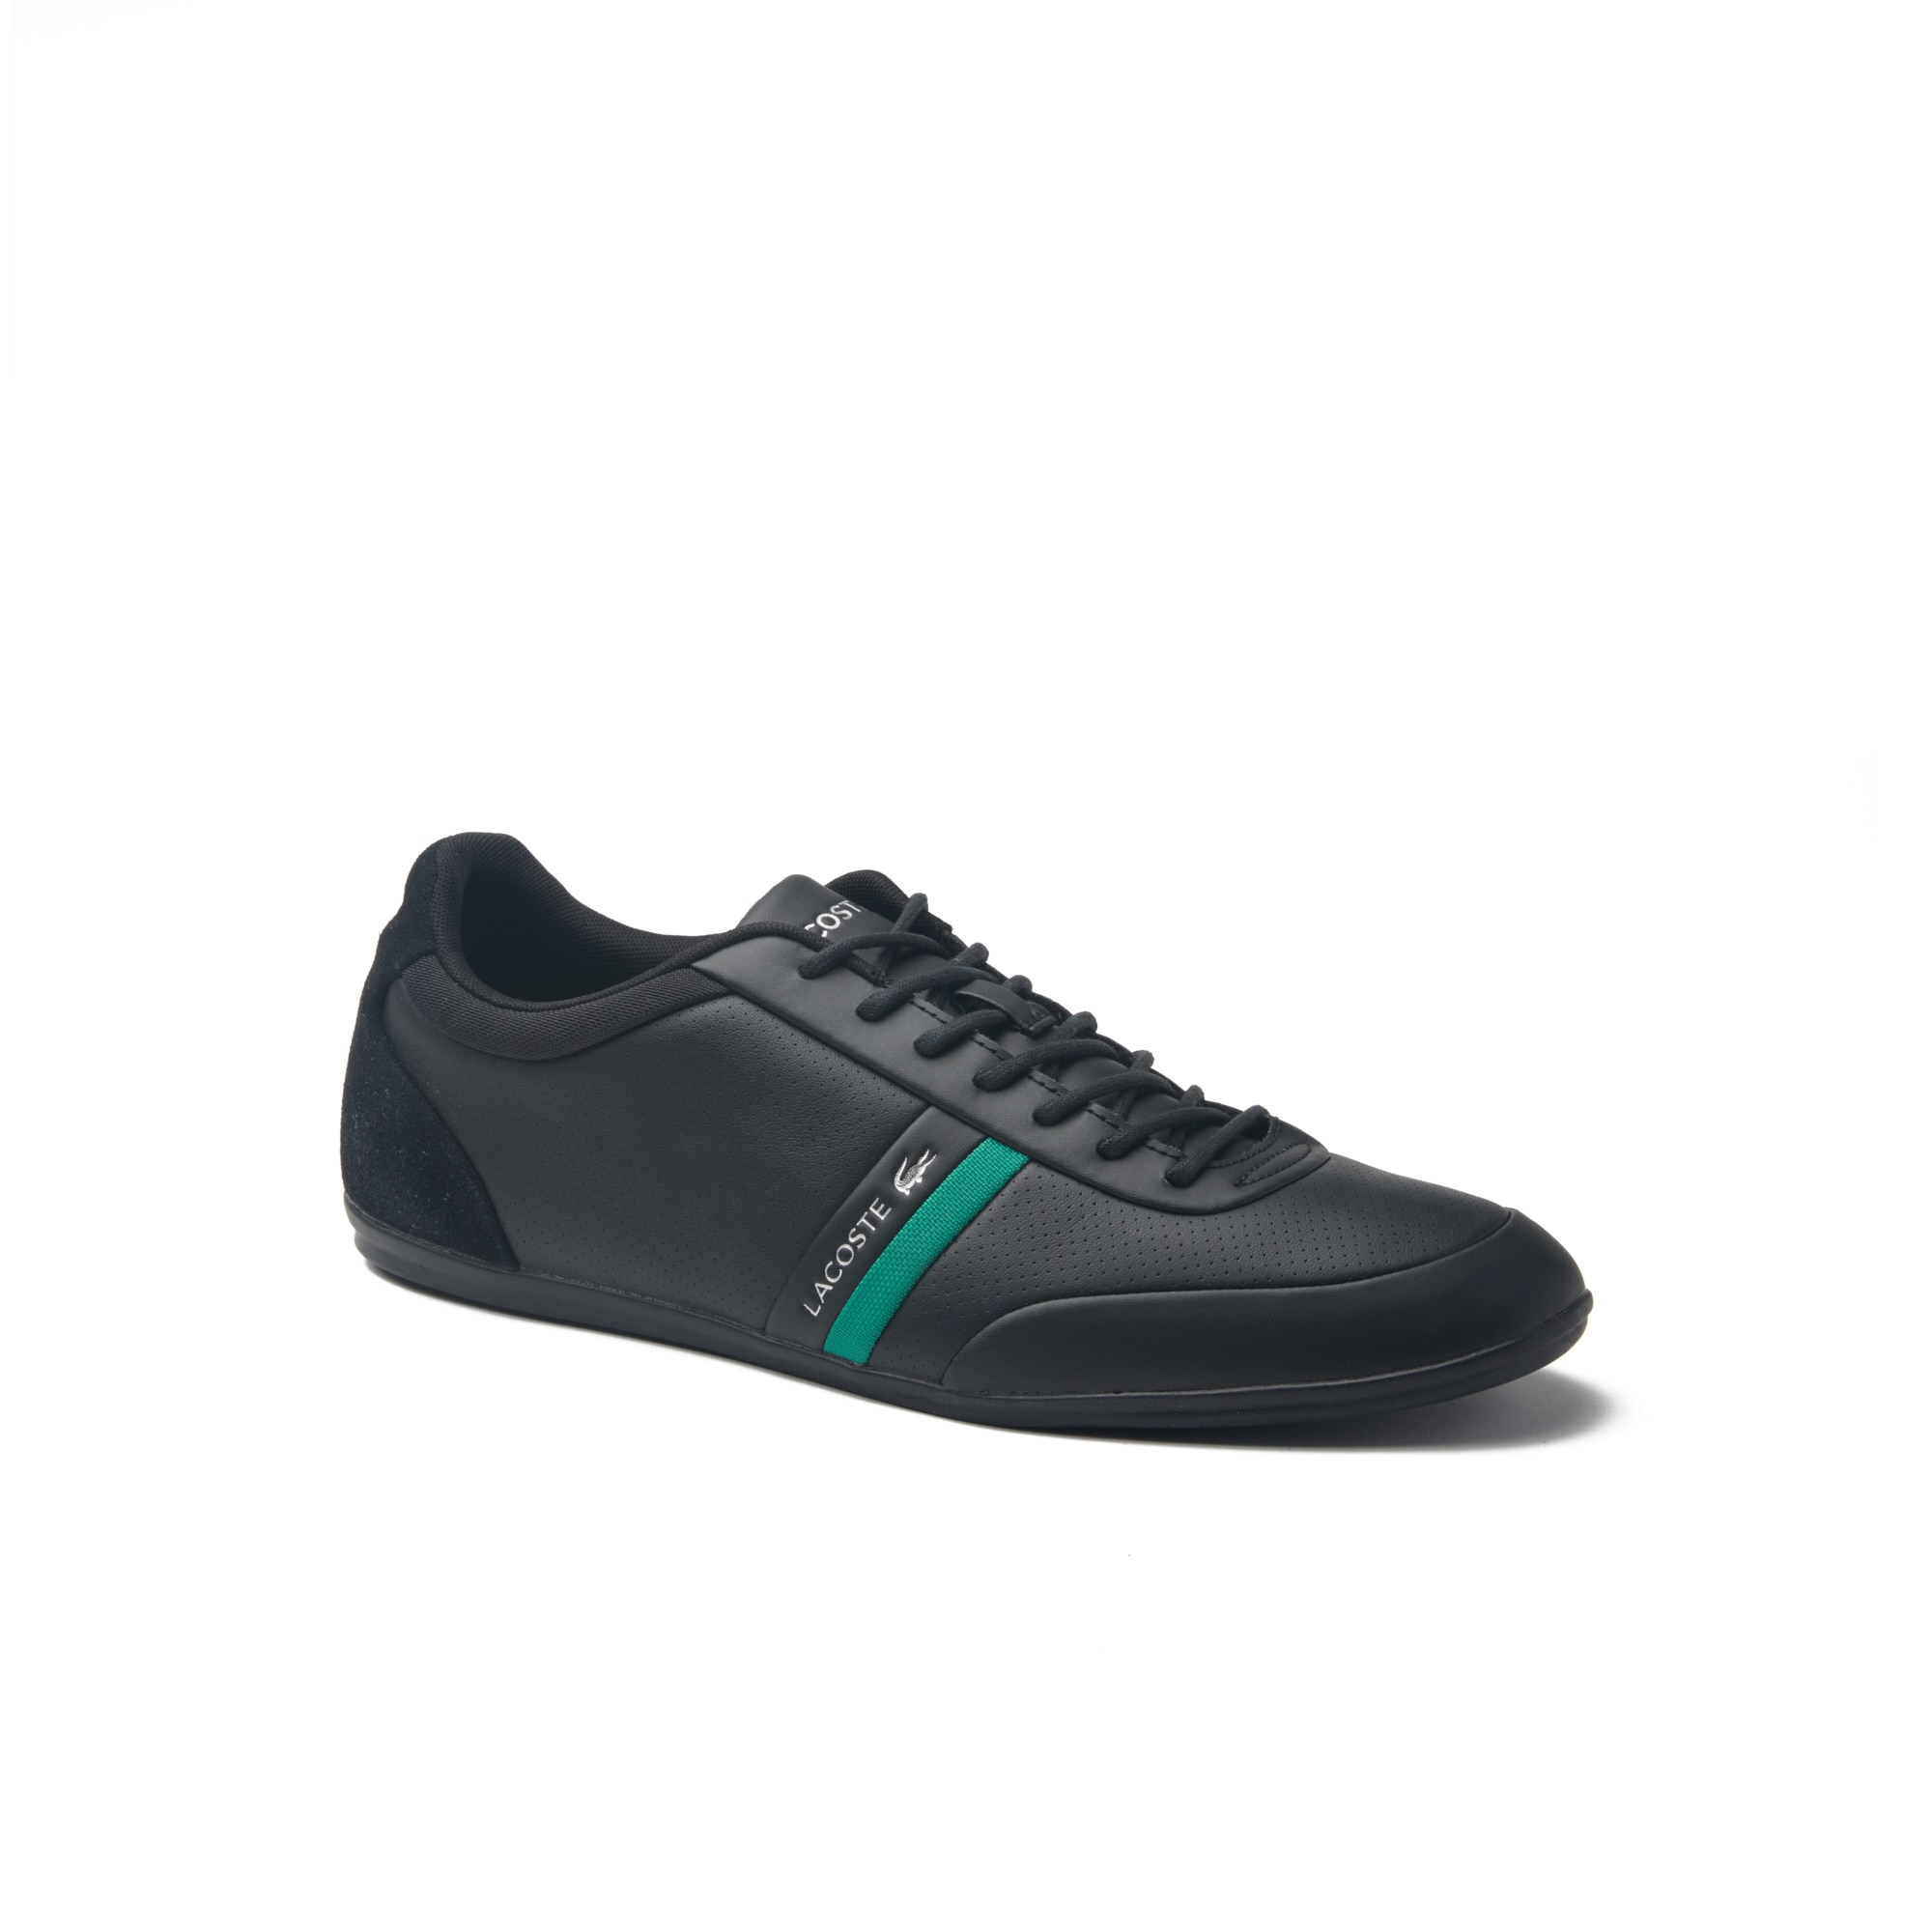 ShoesFor Men Men's Lacoste ShoesFor Men Men's YgIfbyv76